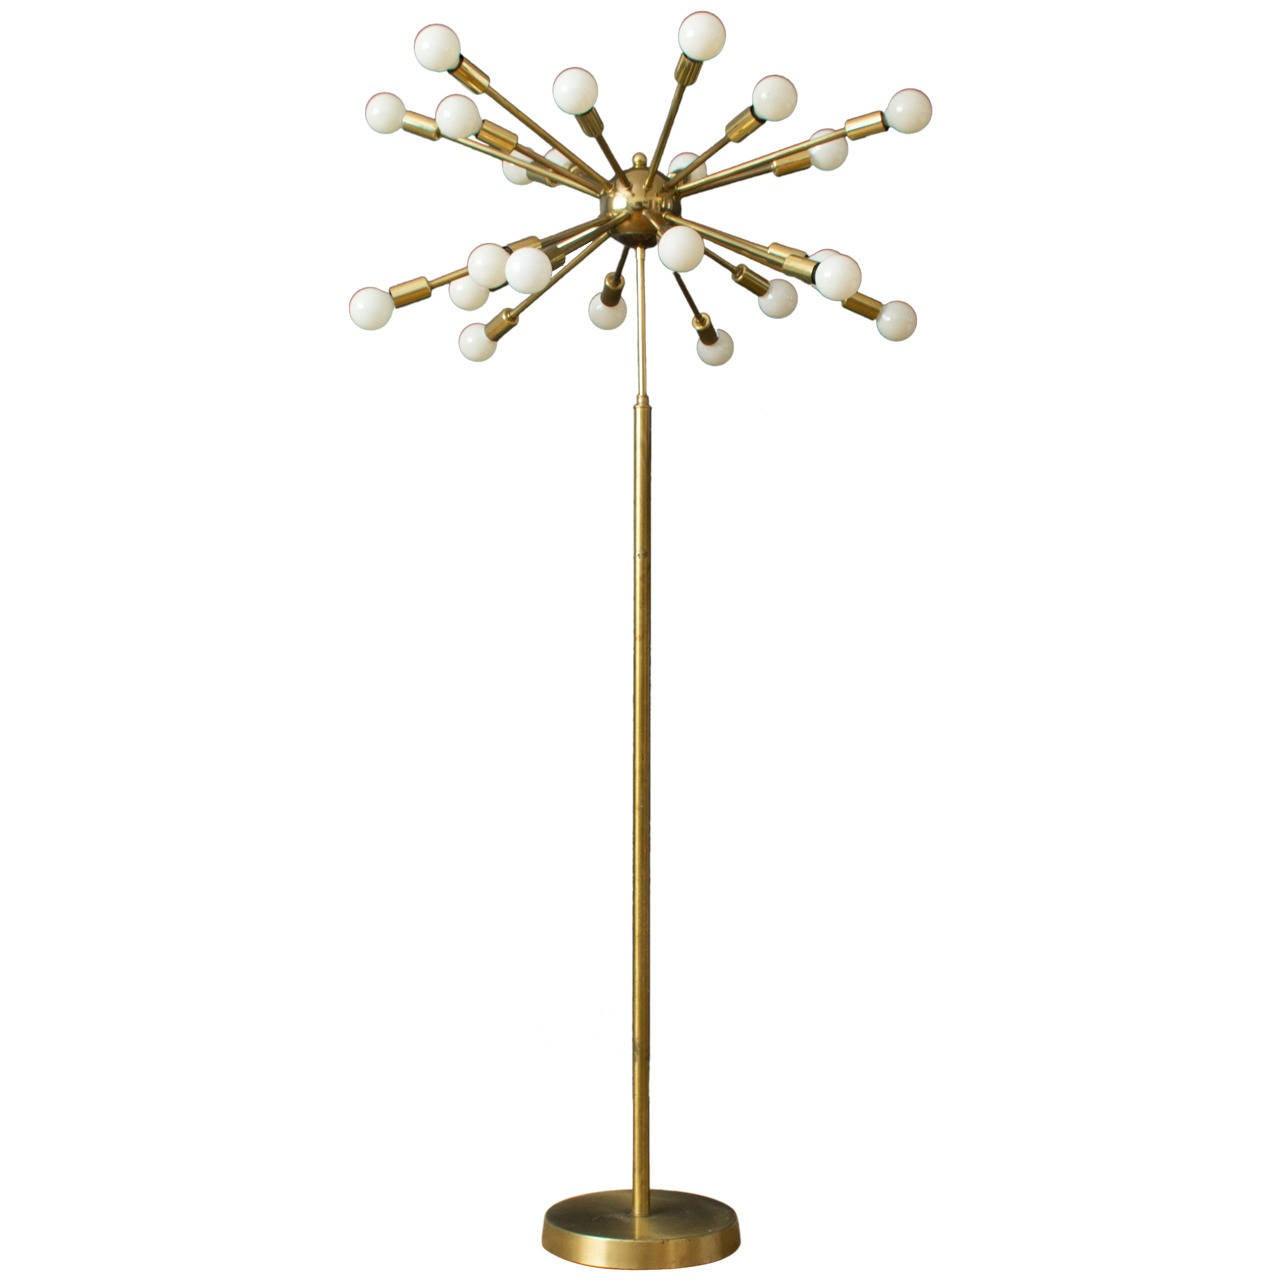 this vintage mid century sputnik floor lamp is no longer available. Black Bedroom Furniture Sets. Home Design Ideas